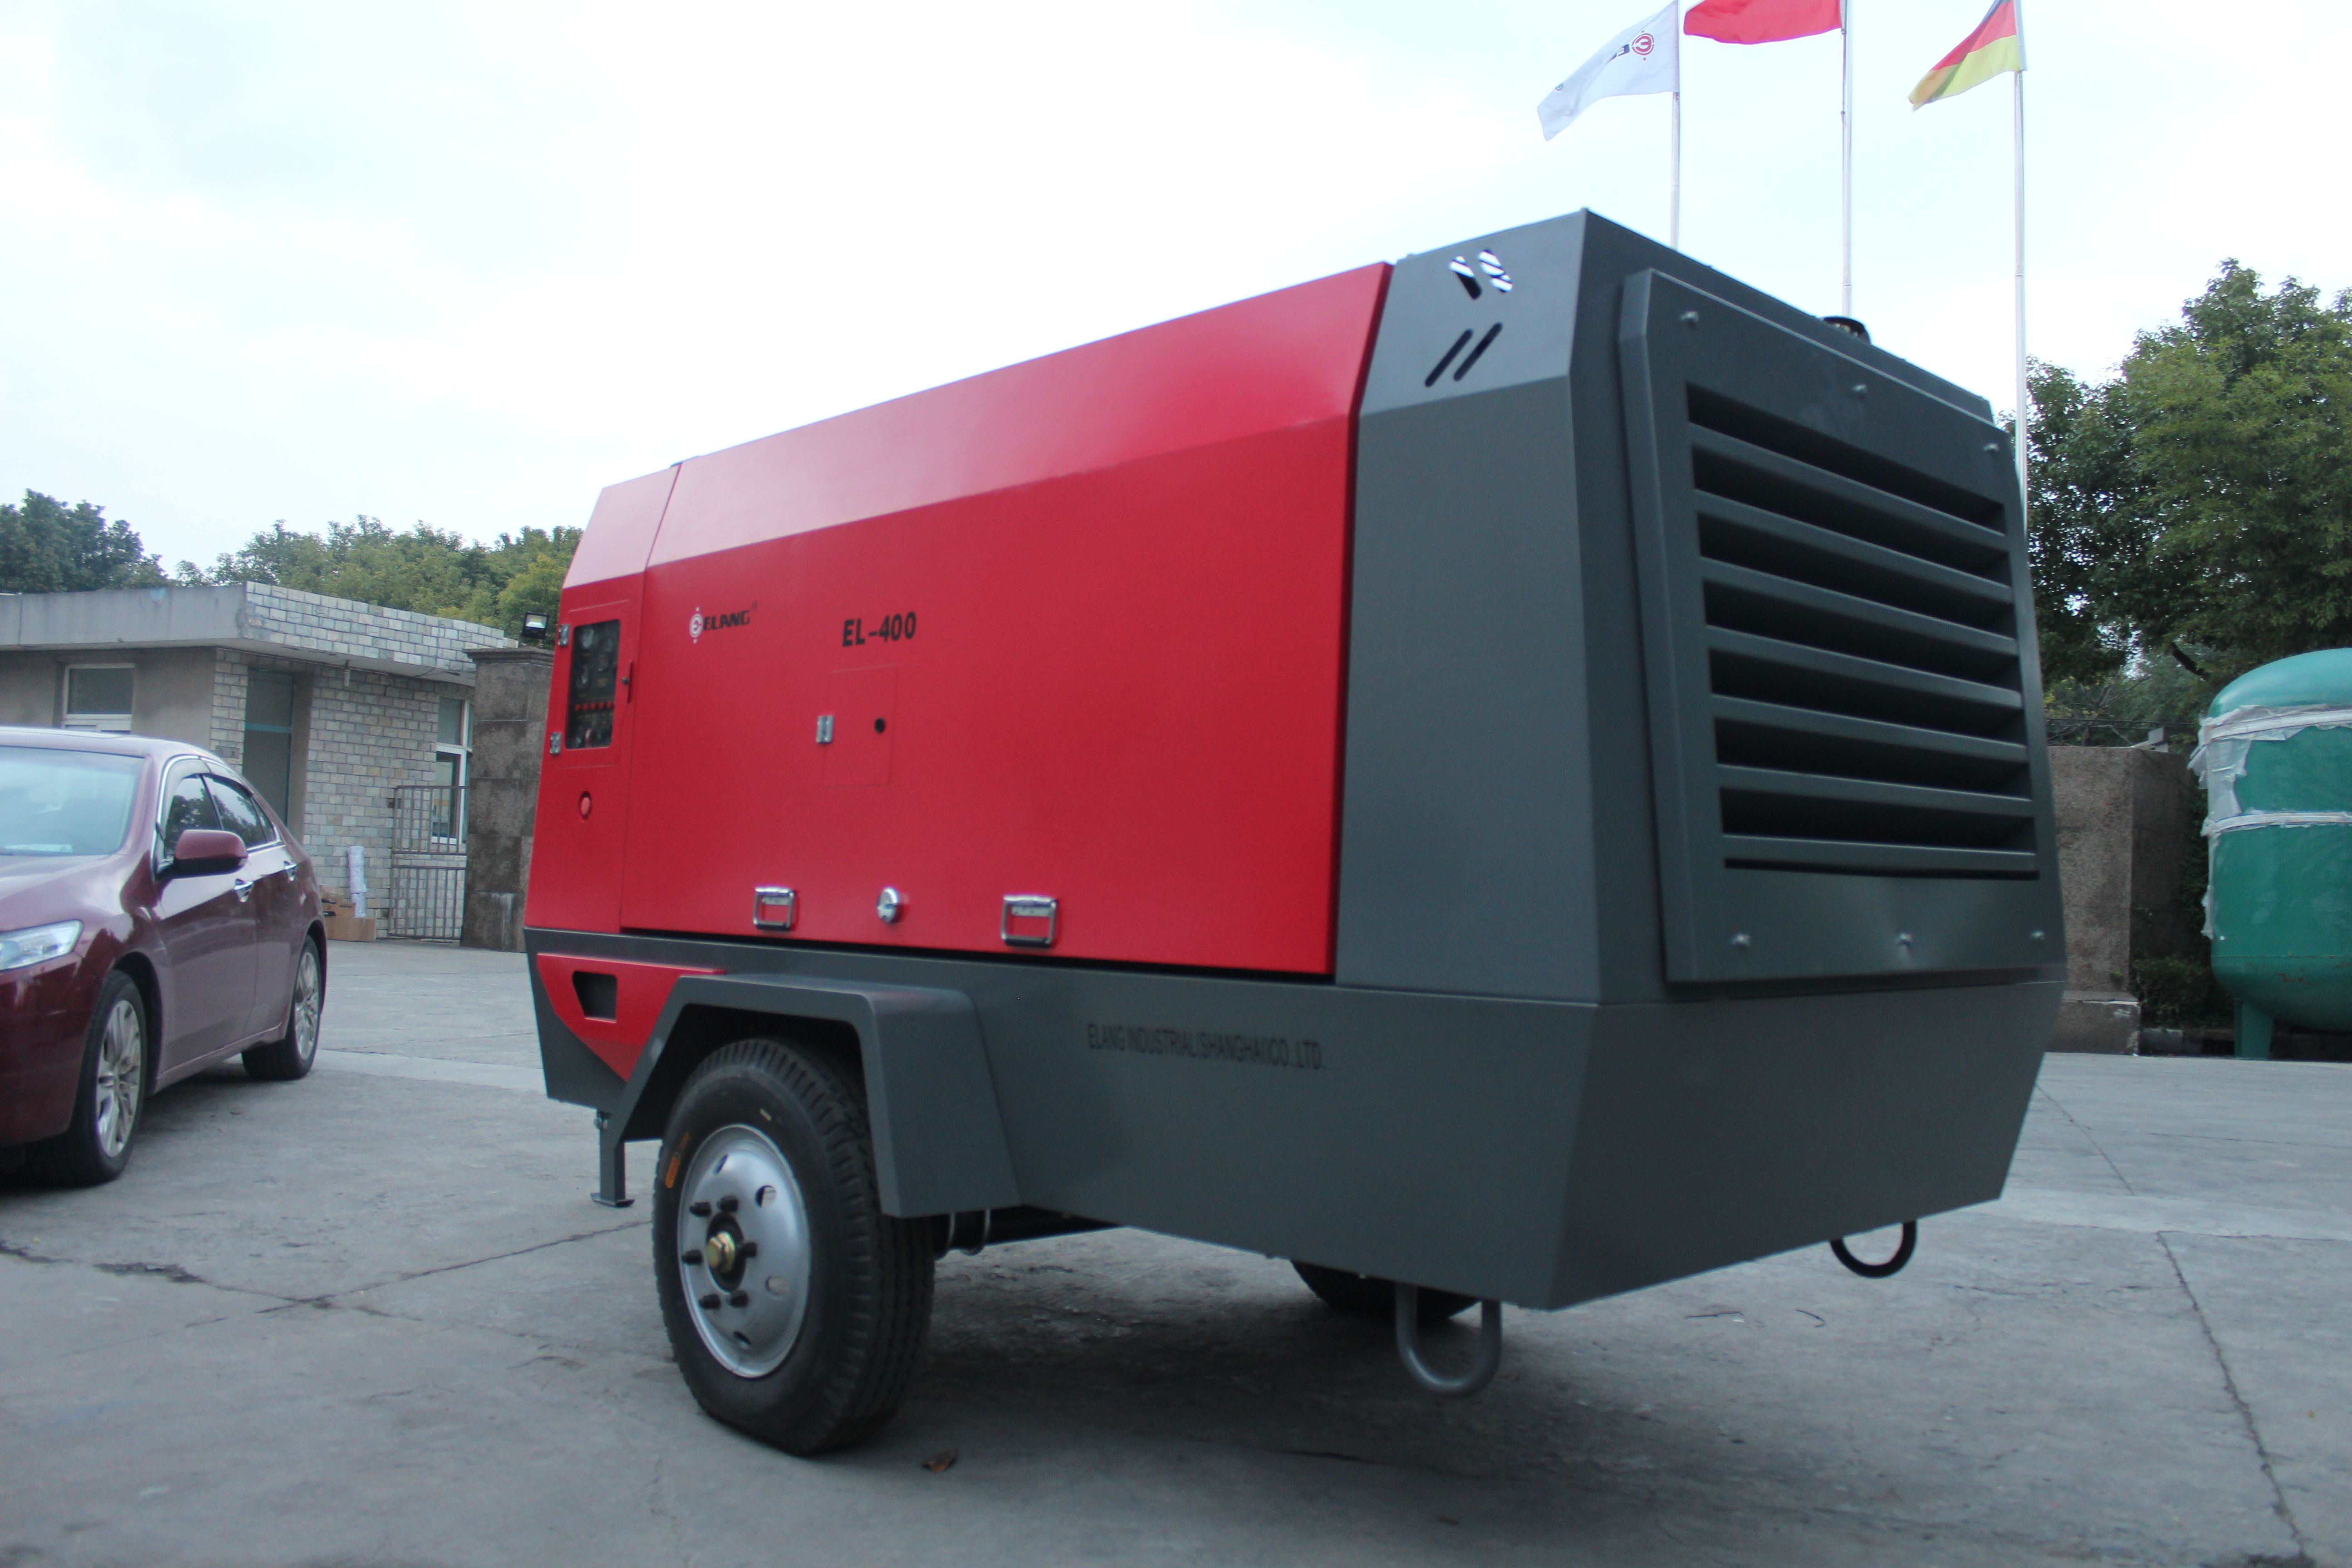 EL400 portable screw air compressor producer Comoros